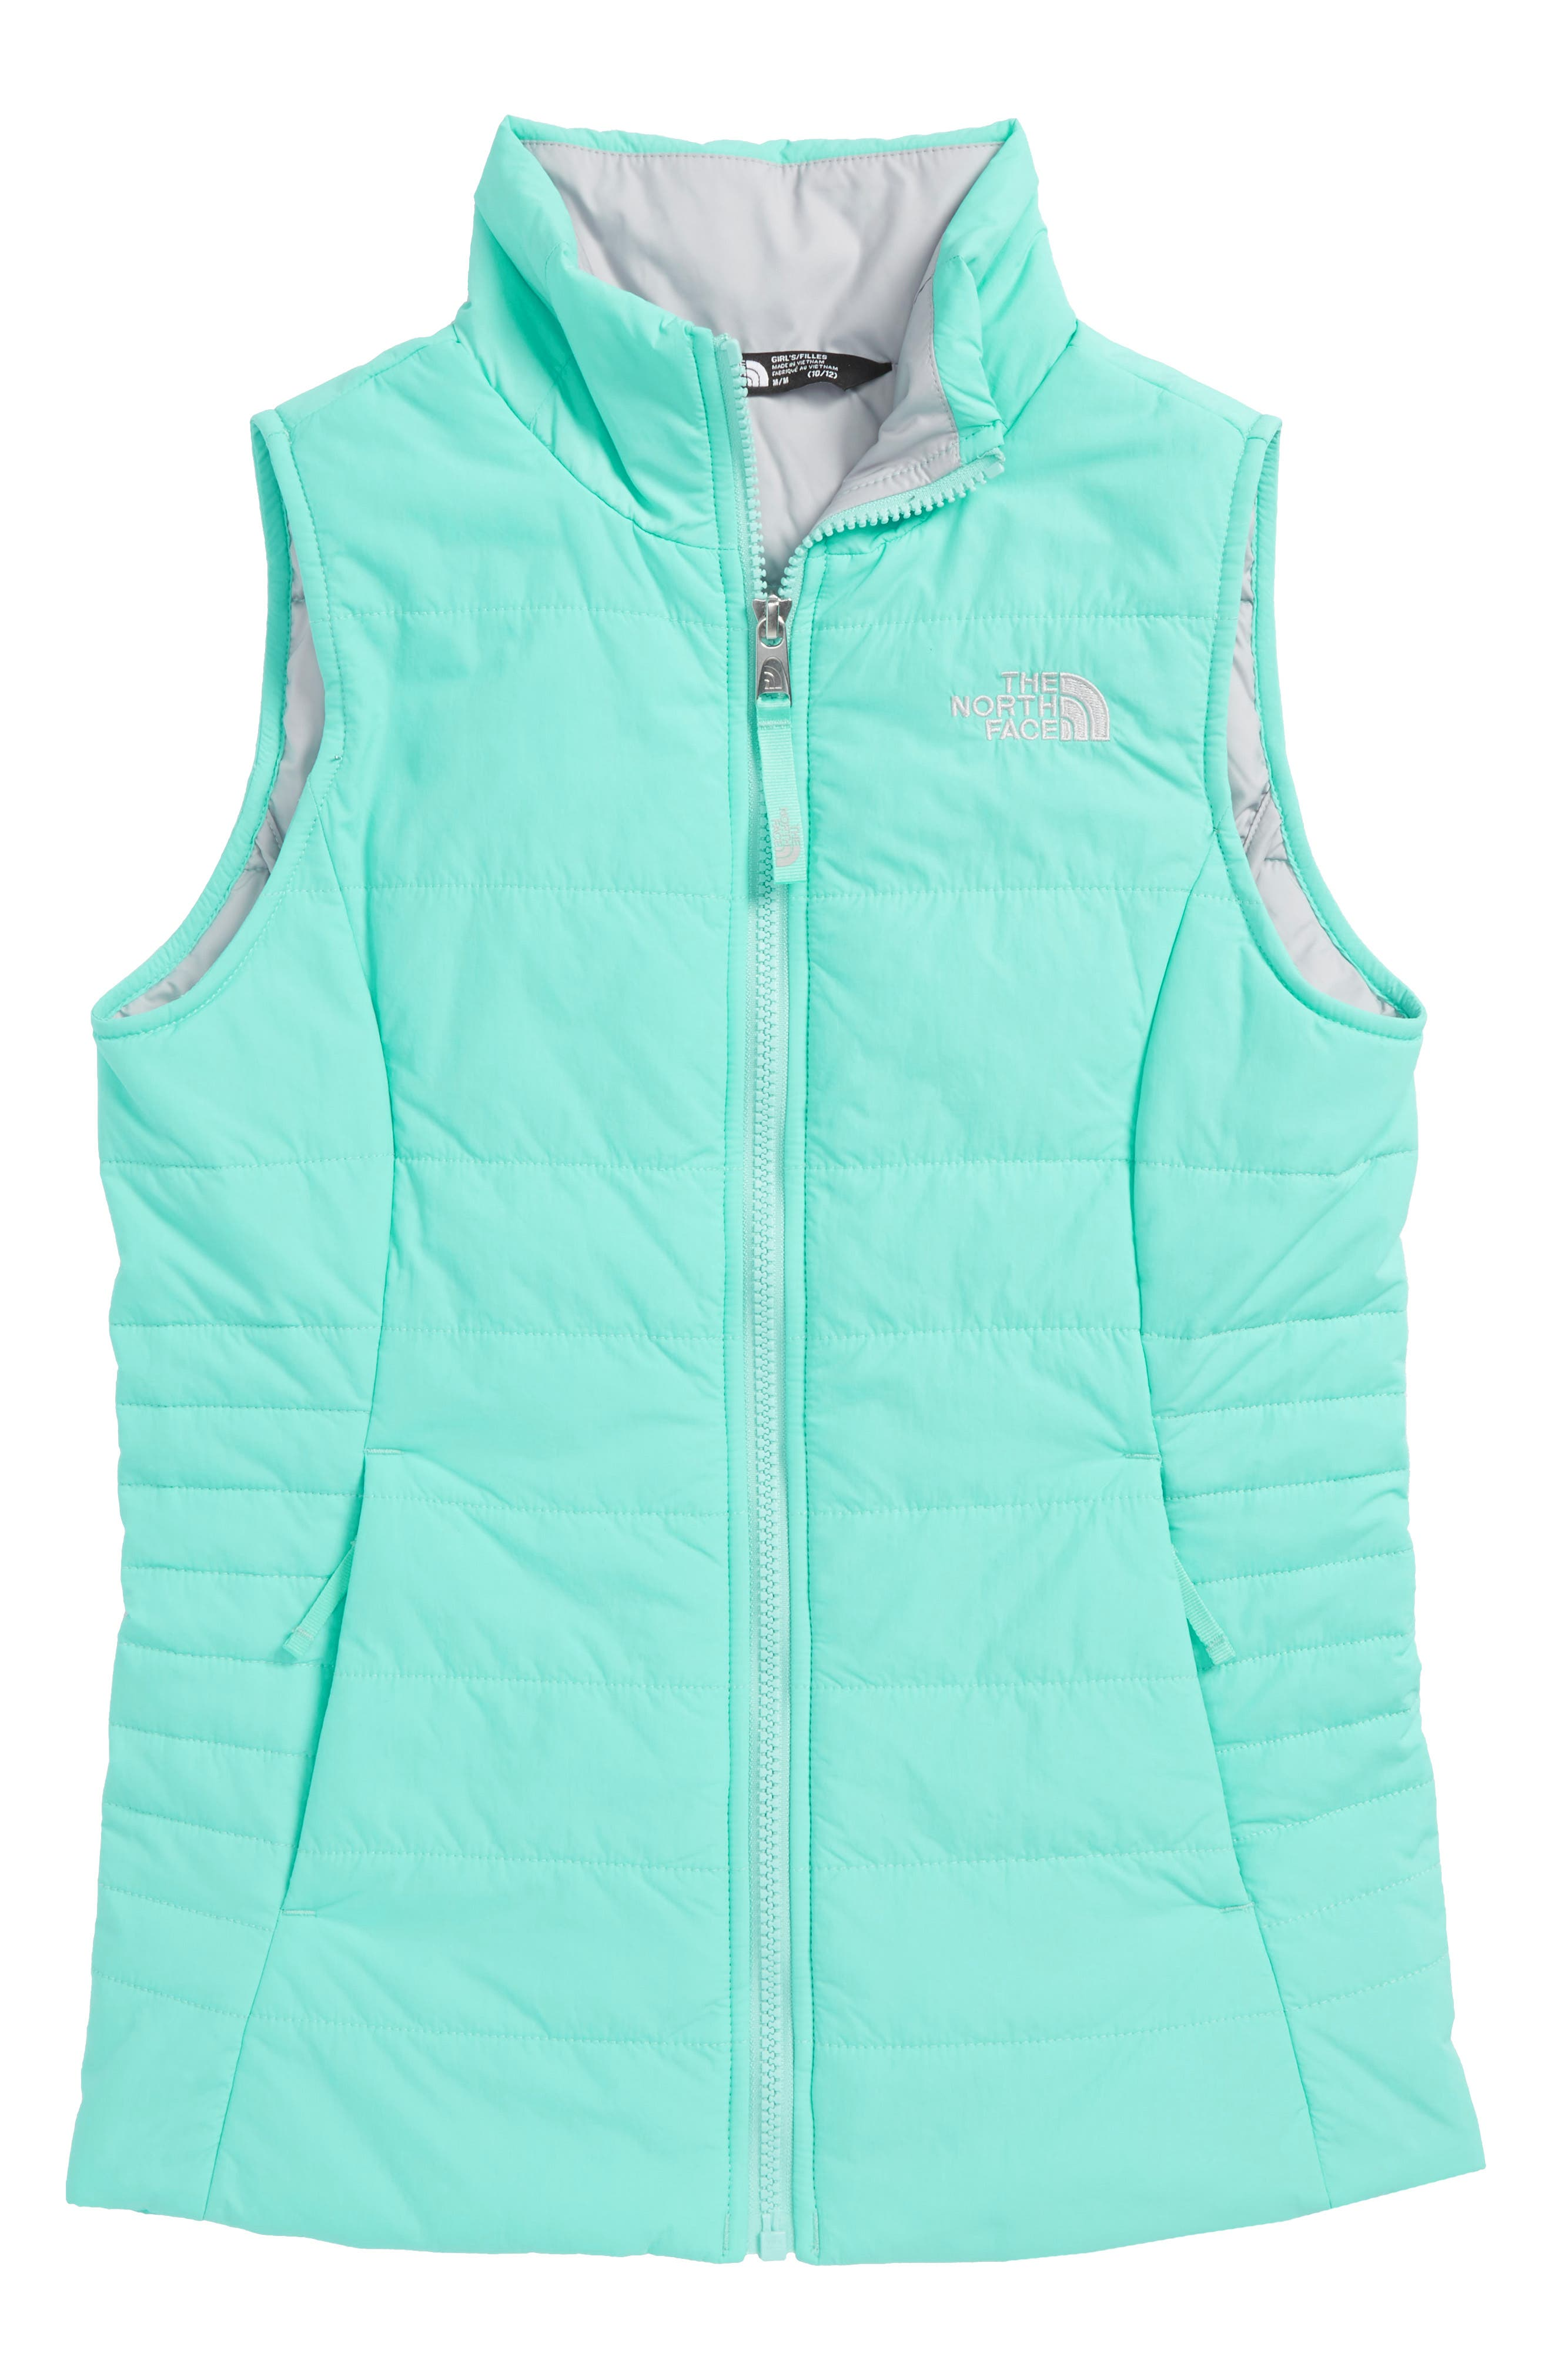 THE NORTH FACE, Harway Vest, Main thumbnail 1, color, MINT BLUE